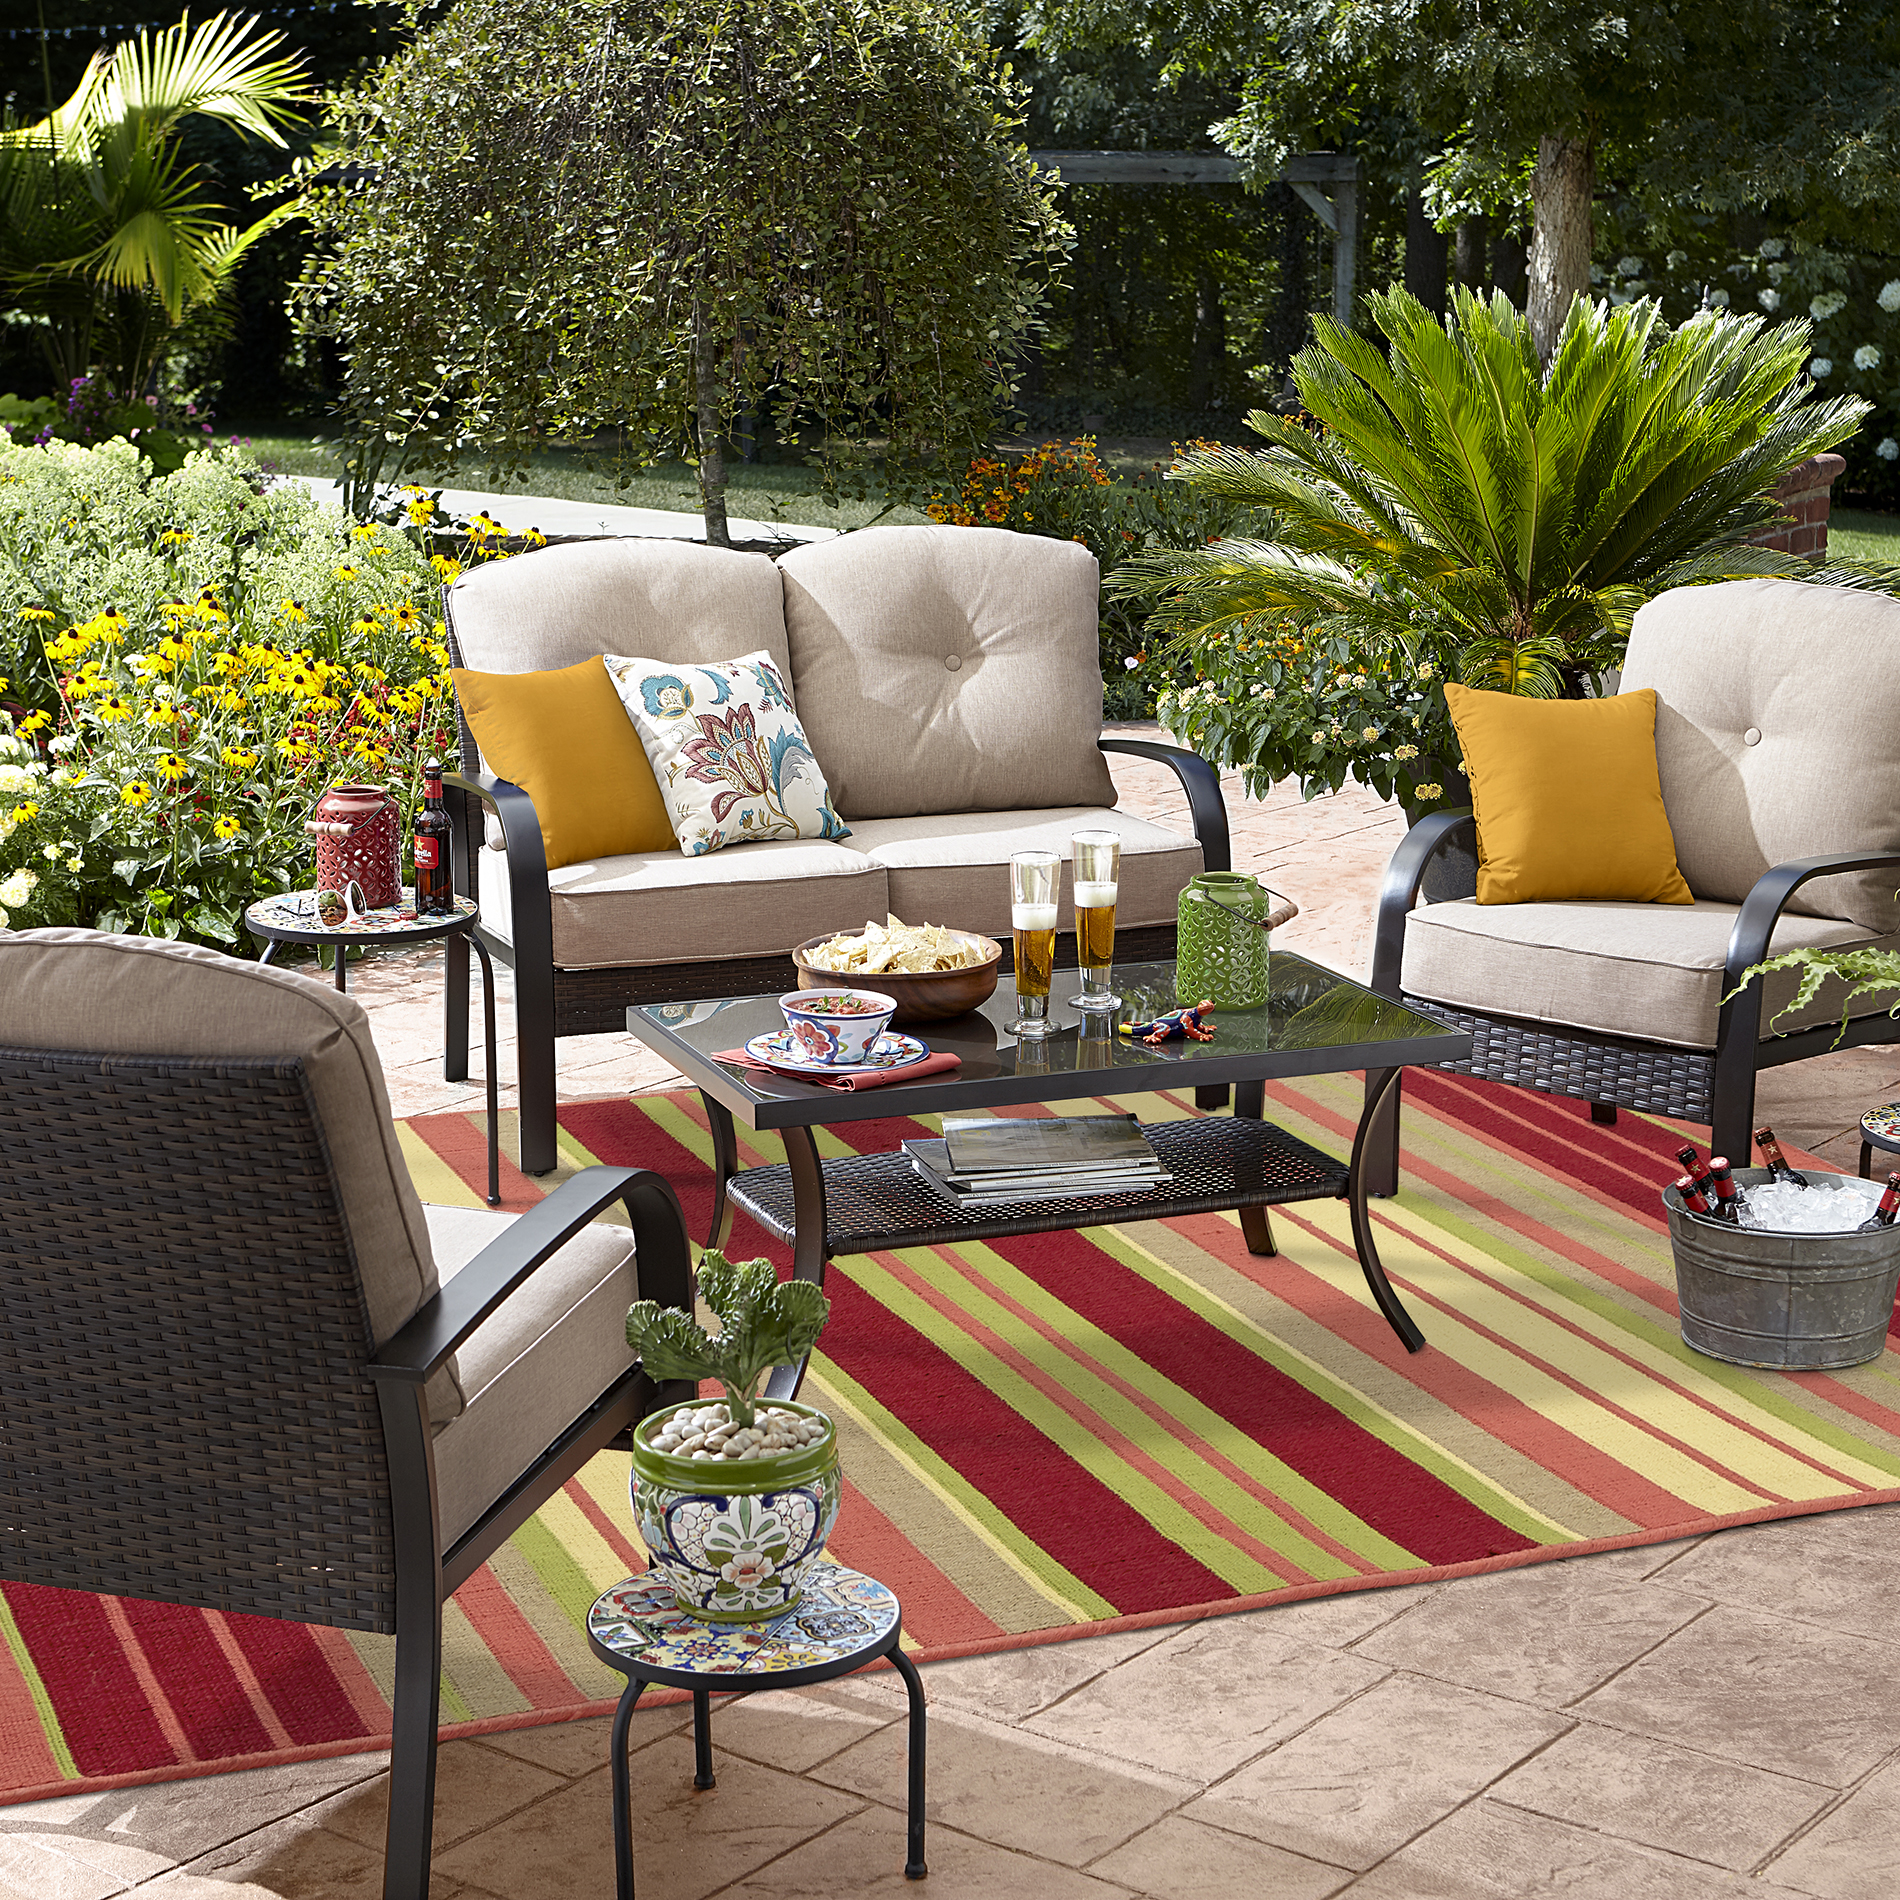 Patio conversation sets inclusions